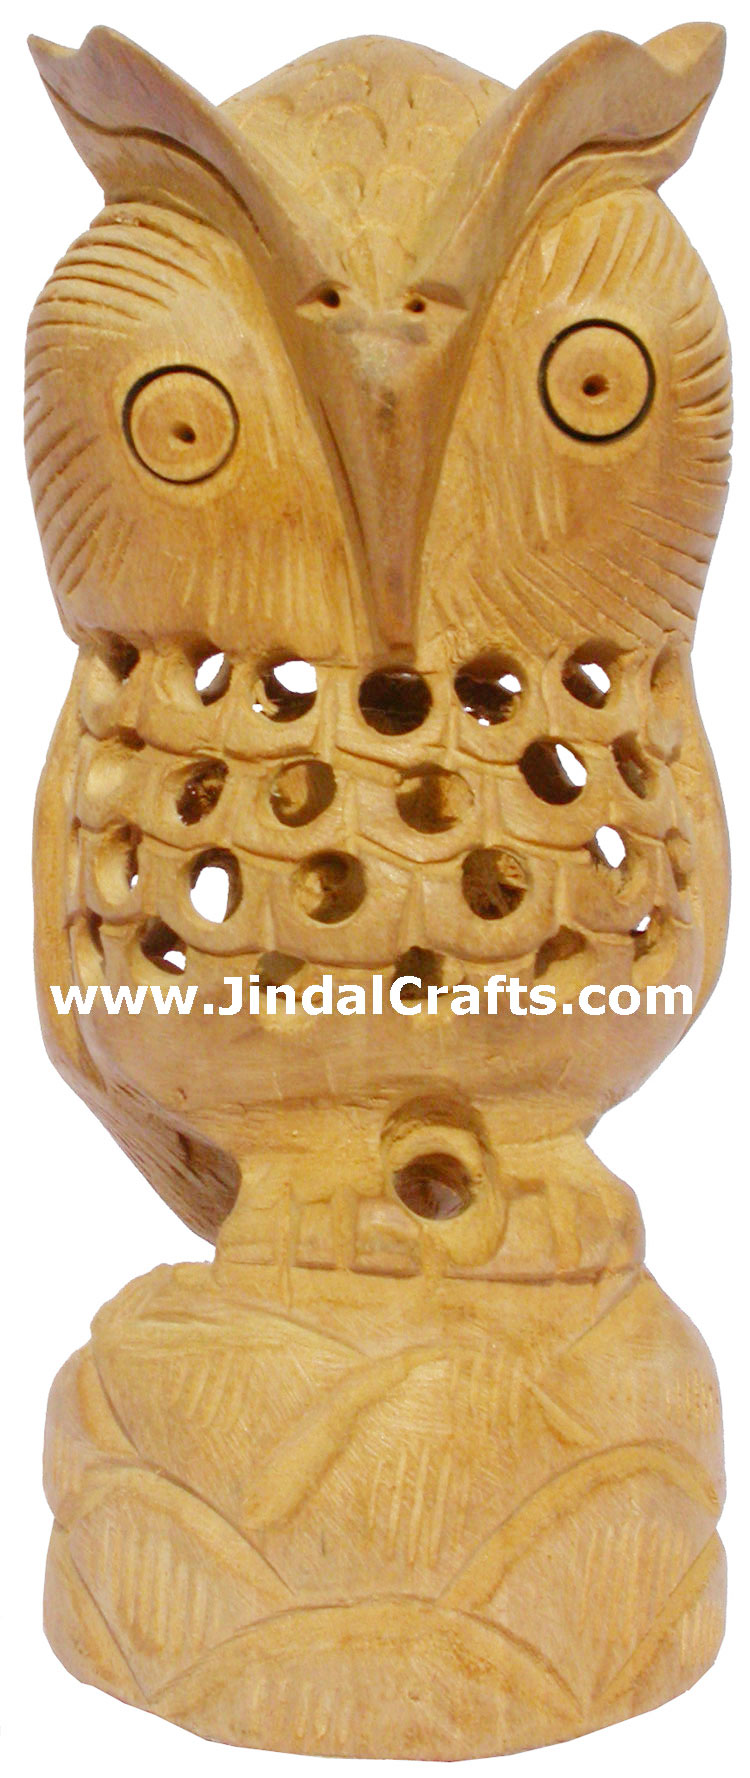 Hand Carved Hollow Owl Figurine Sculpture India Arts Work Handicrafts Fair Trade